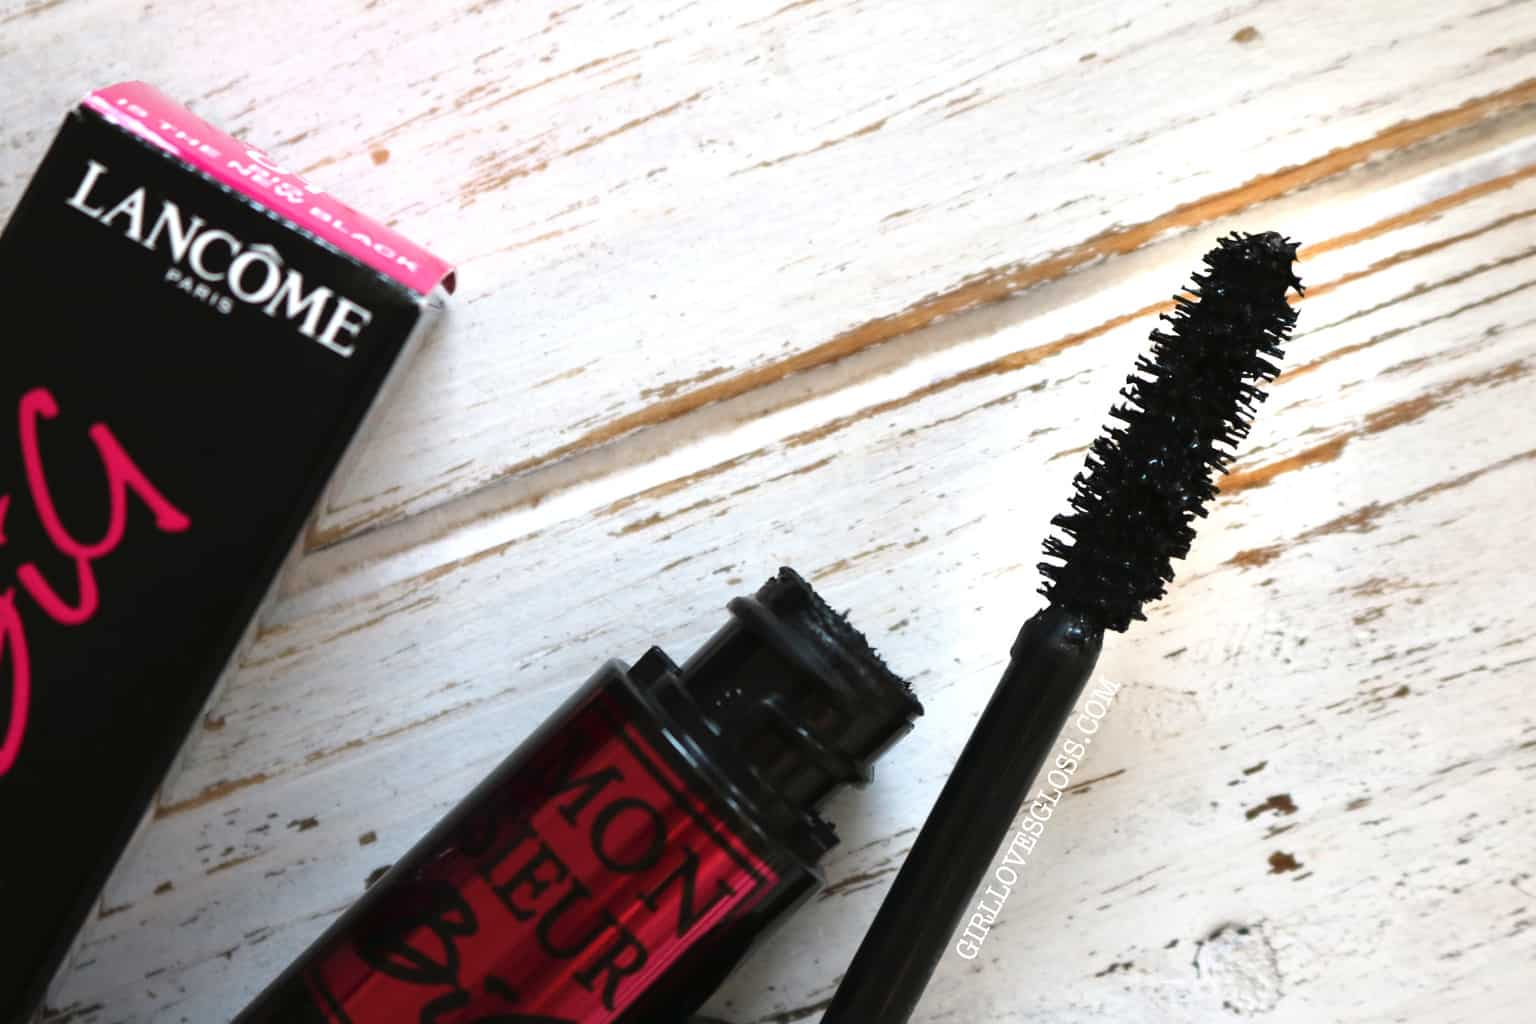 Lancome Monsieur Big Mascara Review